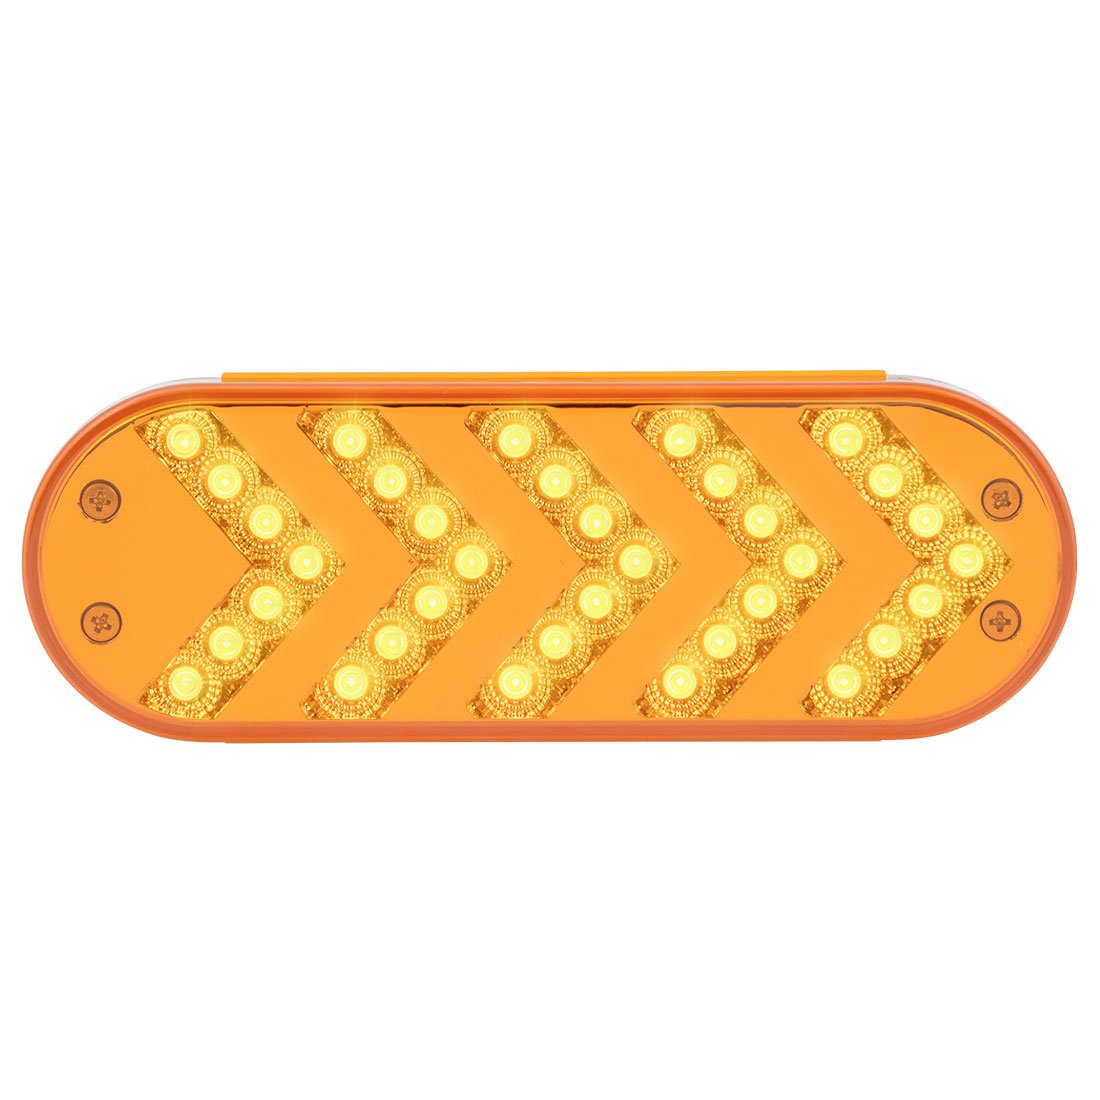 GG Grand General 77124 Oval Sequential 5-Arrow Spyder 35Led Light, Amber Lens by GG Grand General